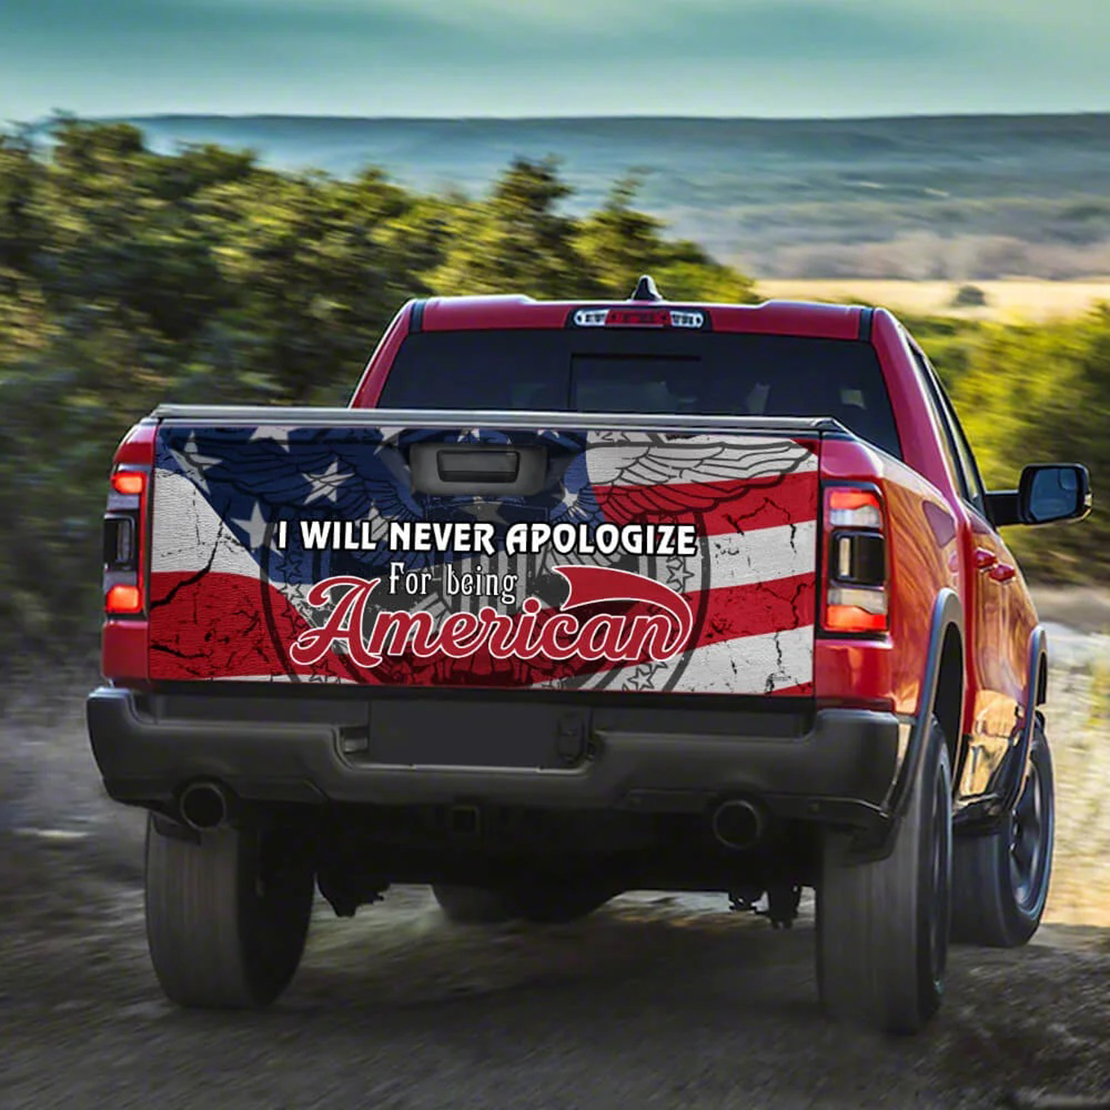 I will never apologize for being American truck sticker - Picture 2